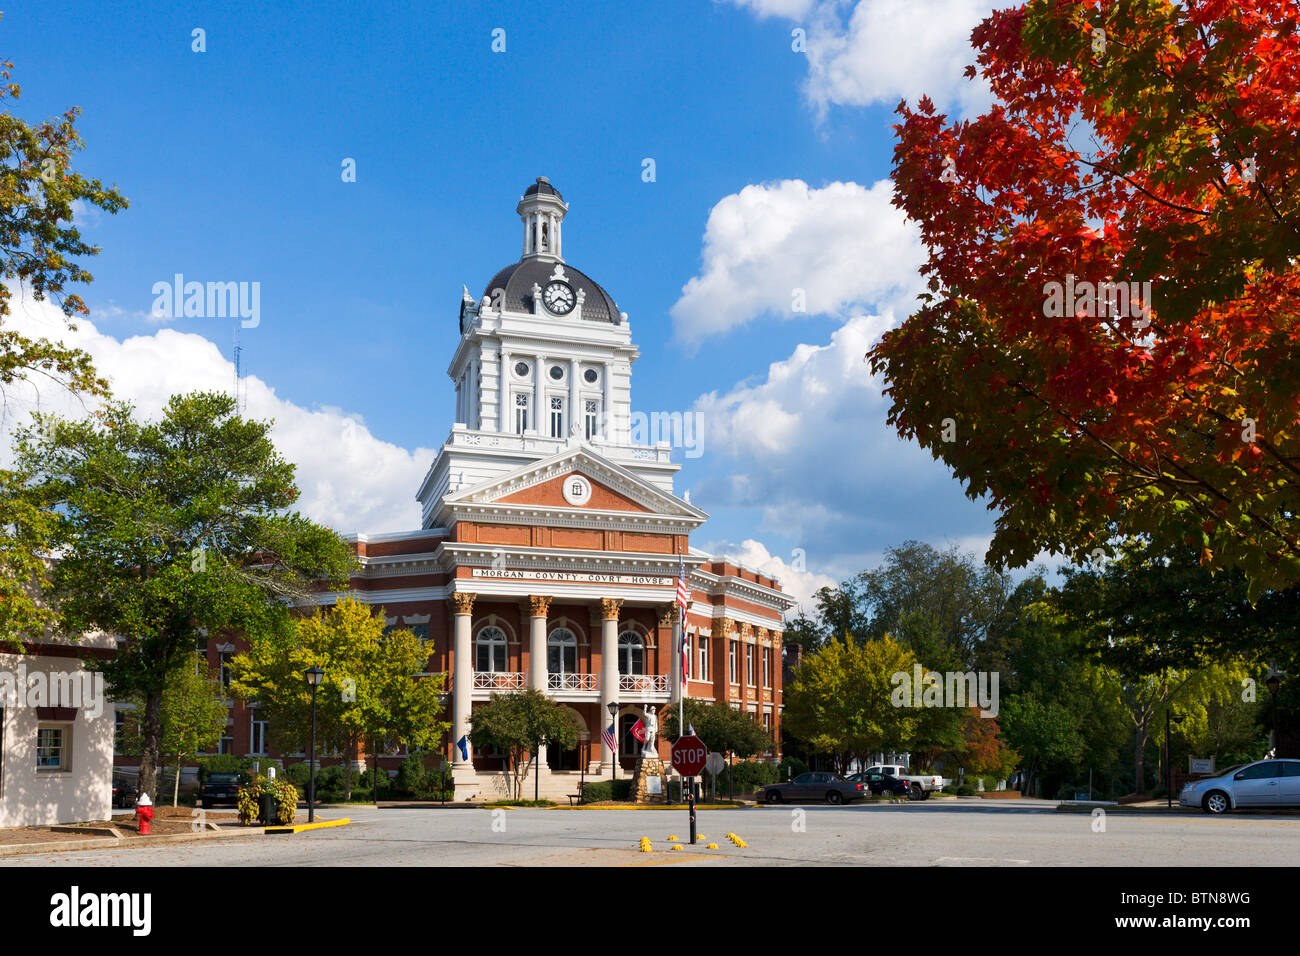 Morgan County Courthouse, Main Square, Madison, Georgia, USA - Stock Image